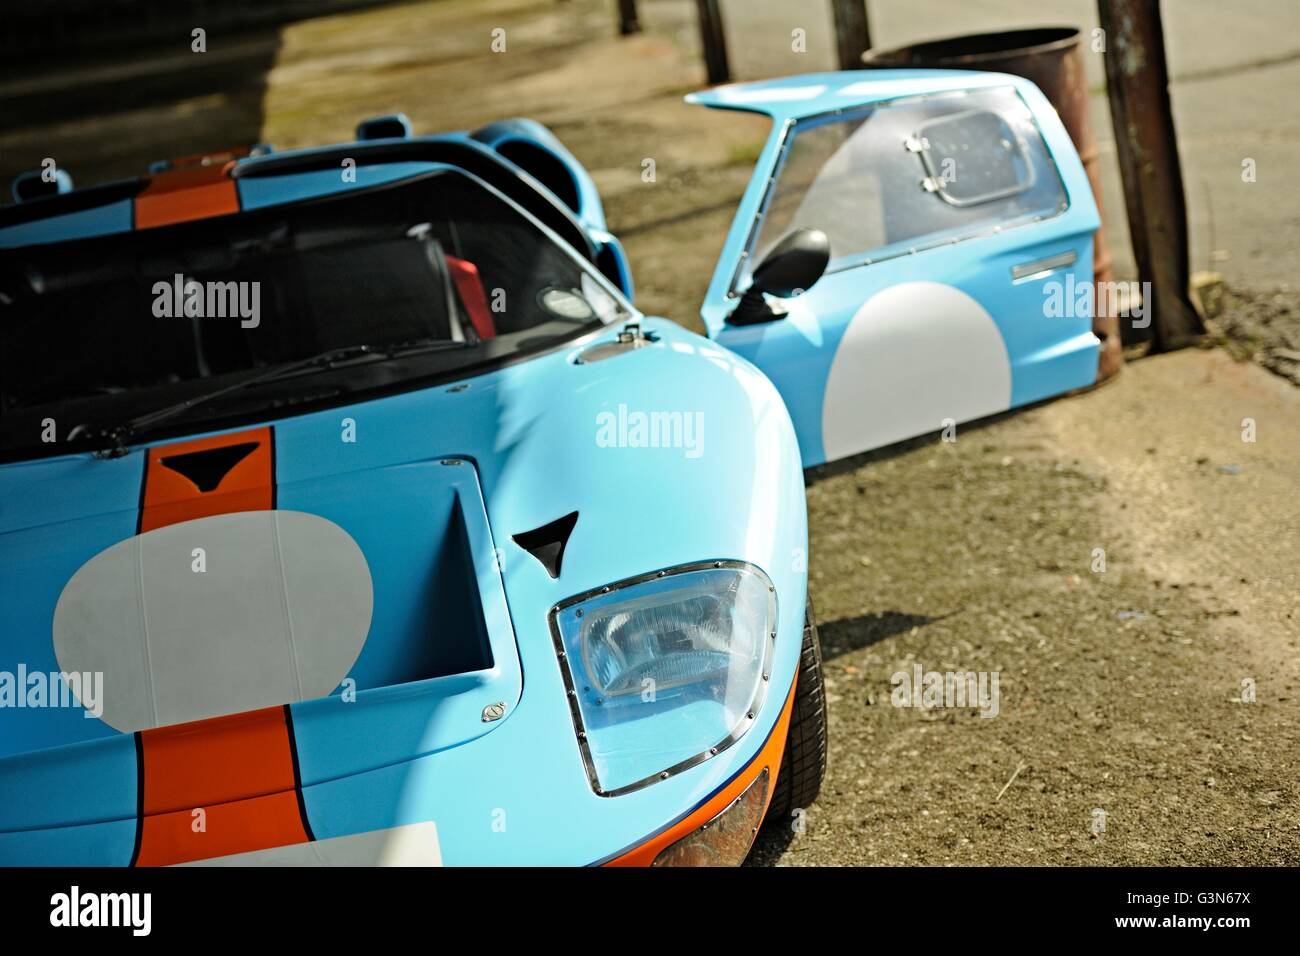 Front View of Ford GT MkII in Gulf Racing livery with one door open - Stock Image